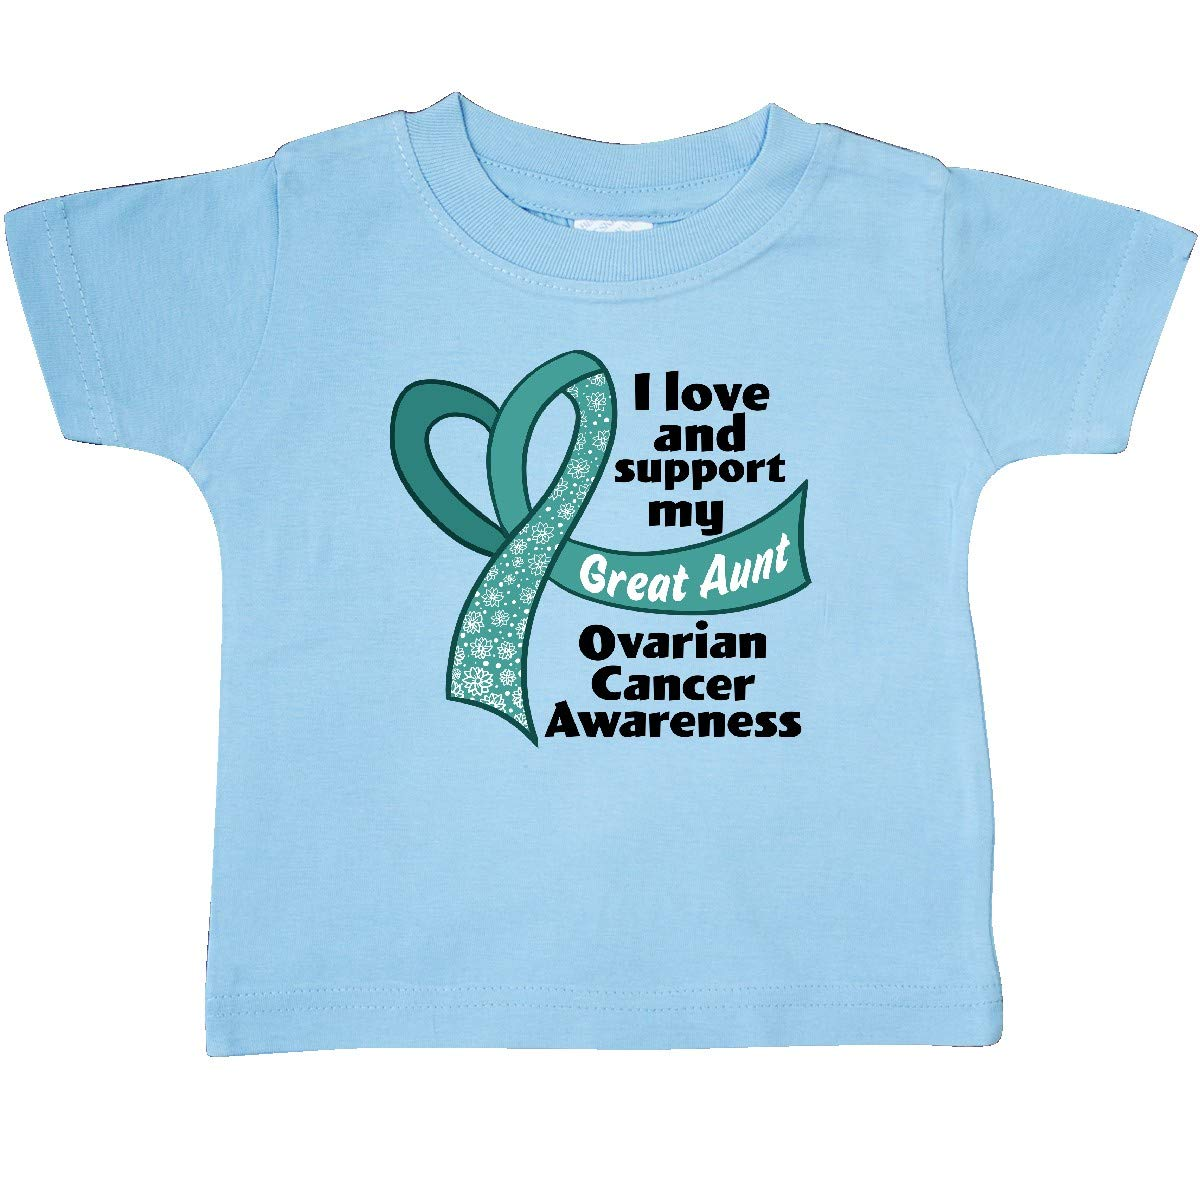 inktastic Ovarian Cancer Awareness I Love and Support My Great Aunt Baby T-Shirt